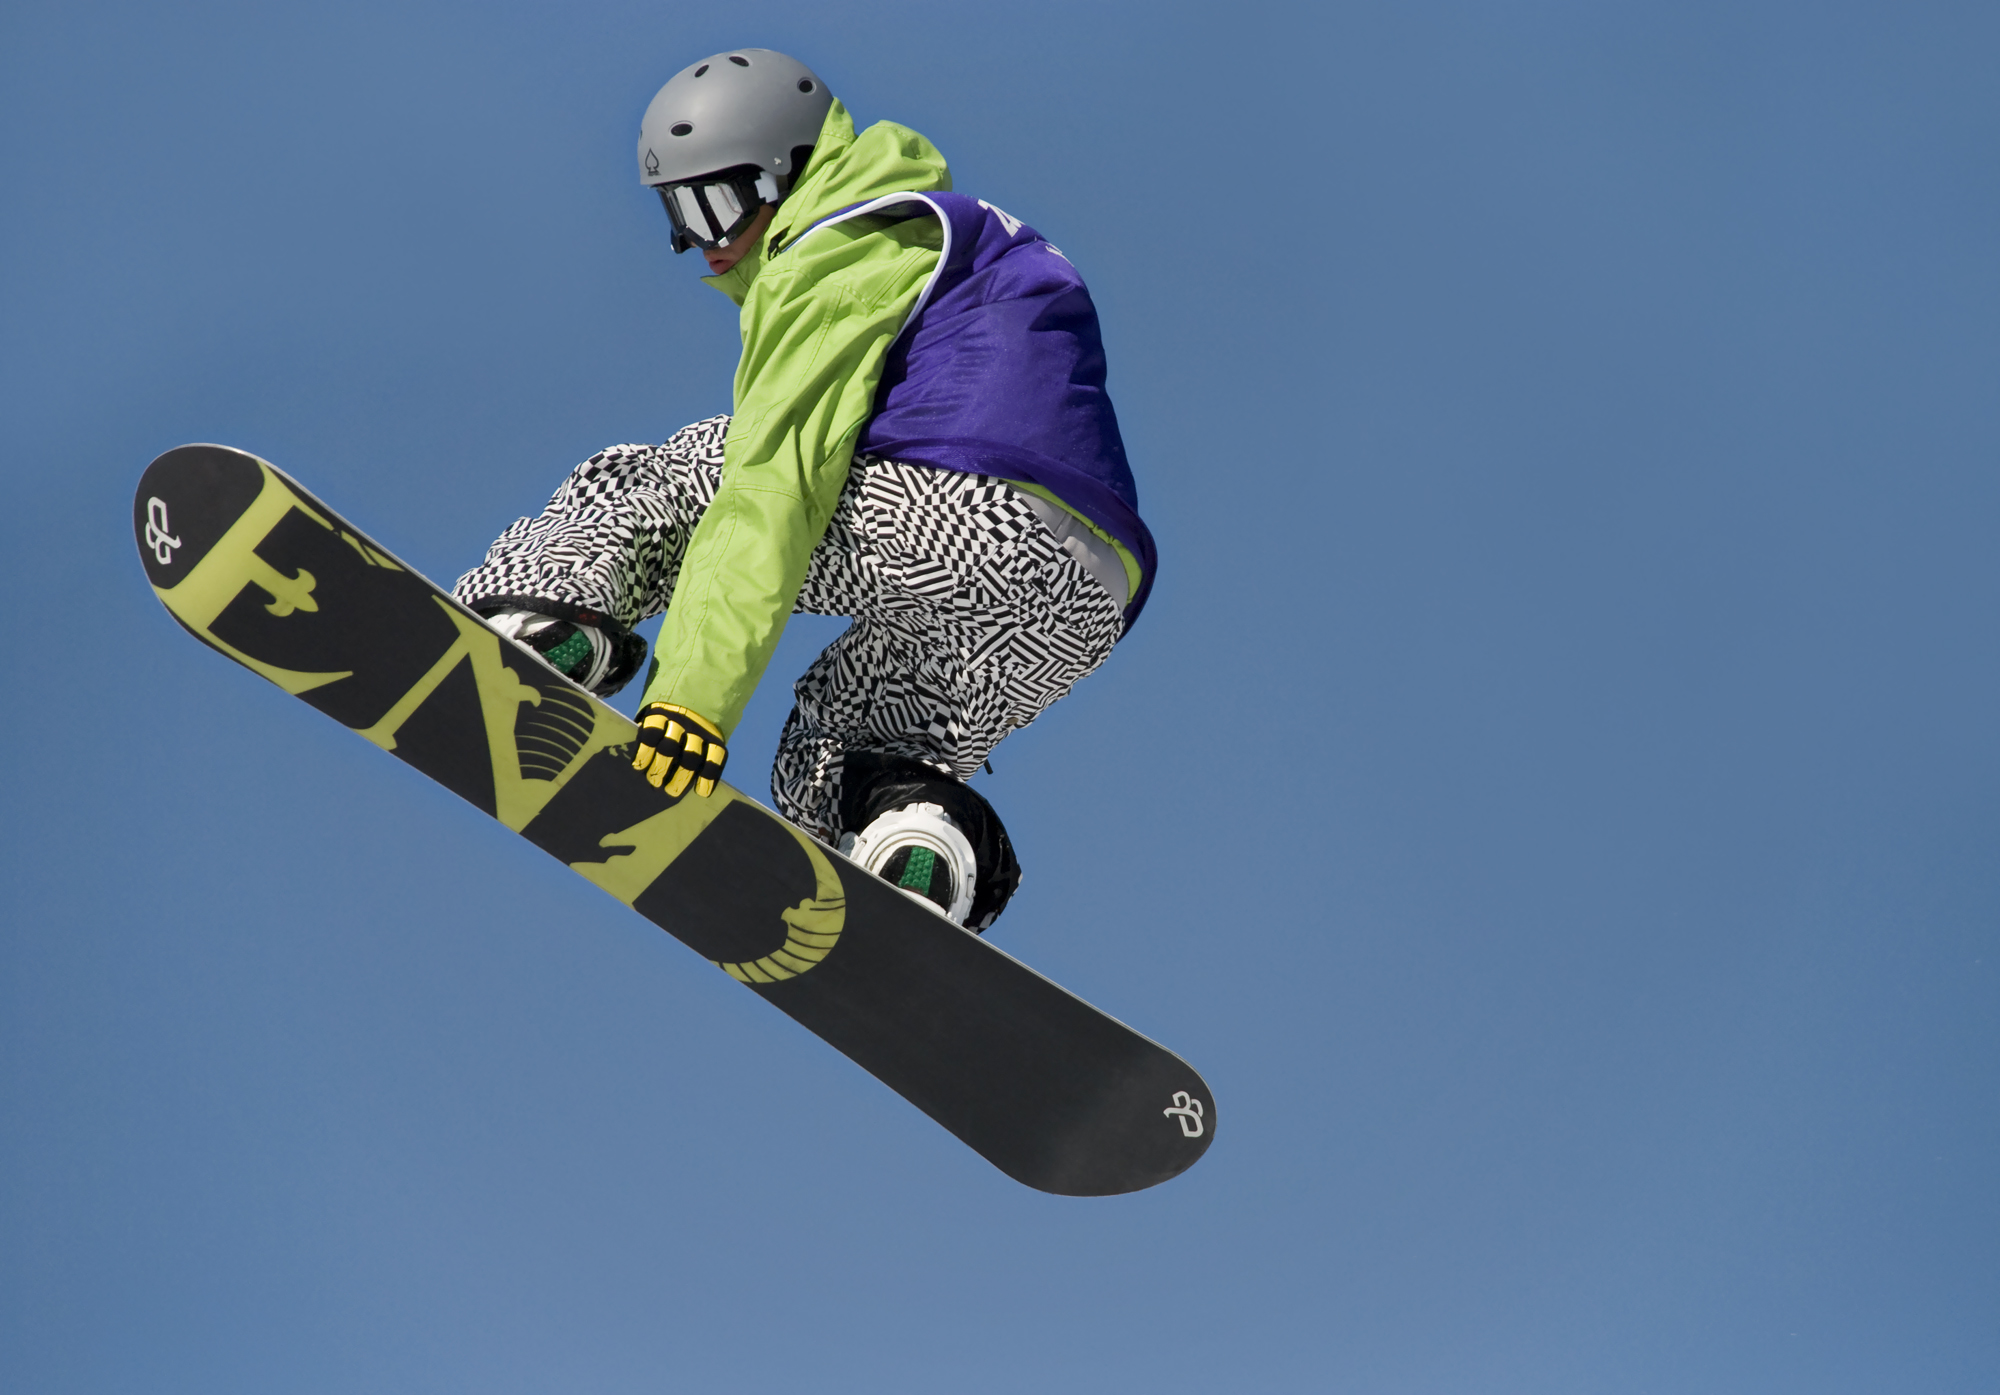 how to land a snowboard jump